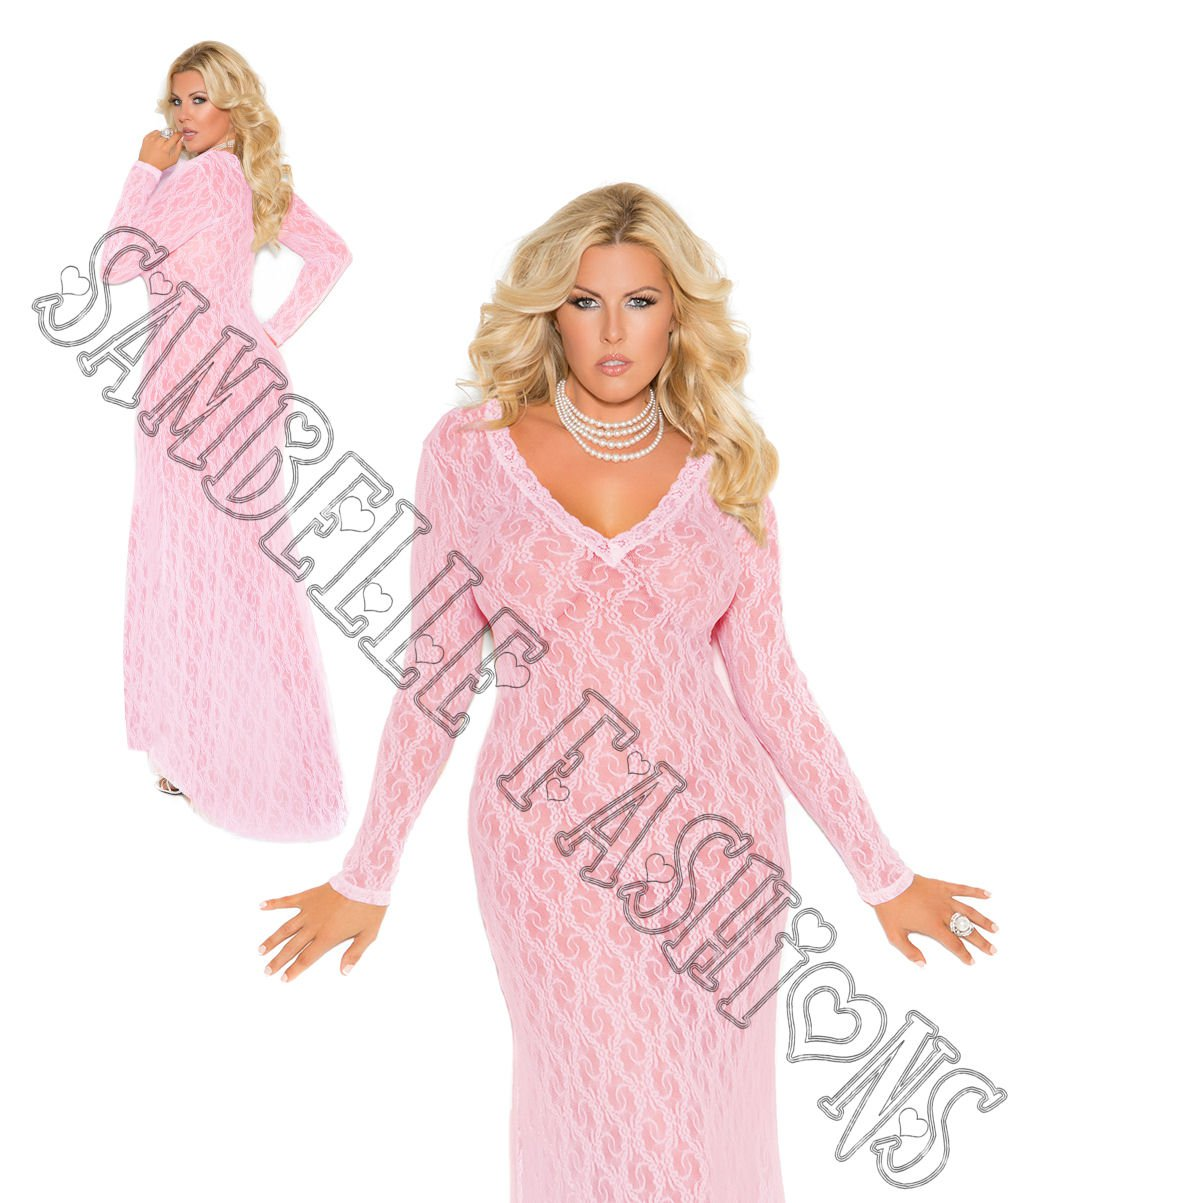 Baby Pink Long Sleeve Lace Gown - 2X